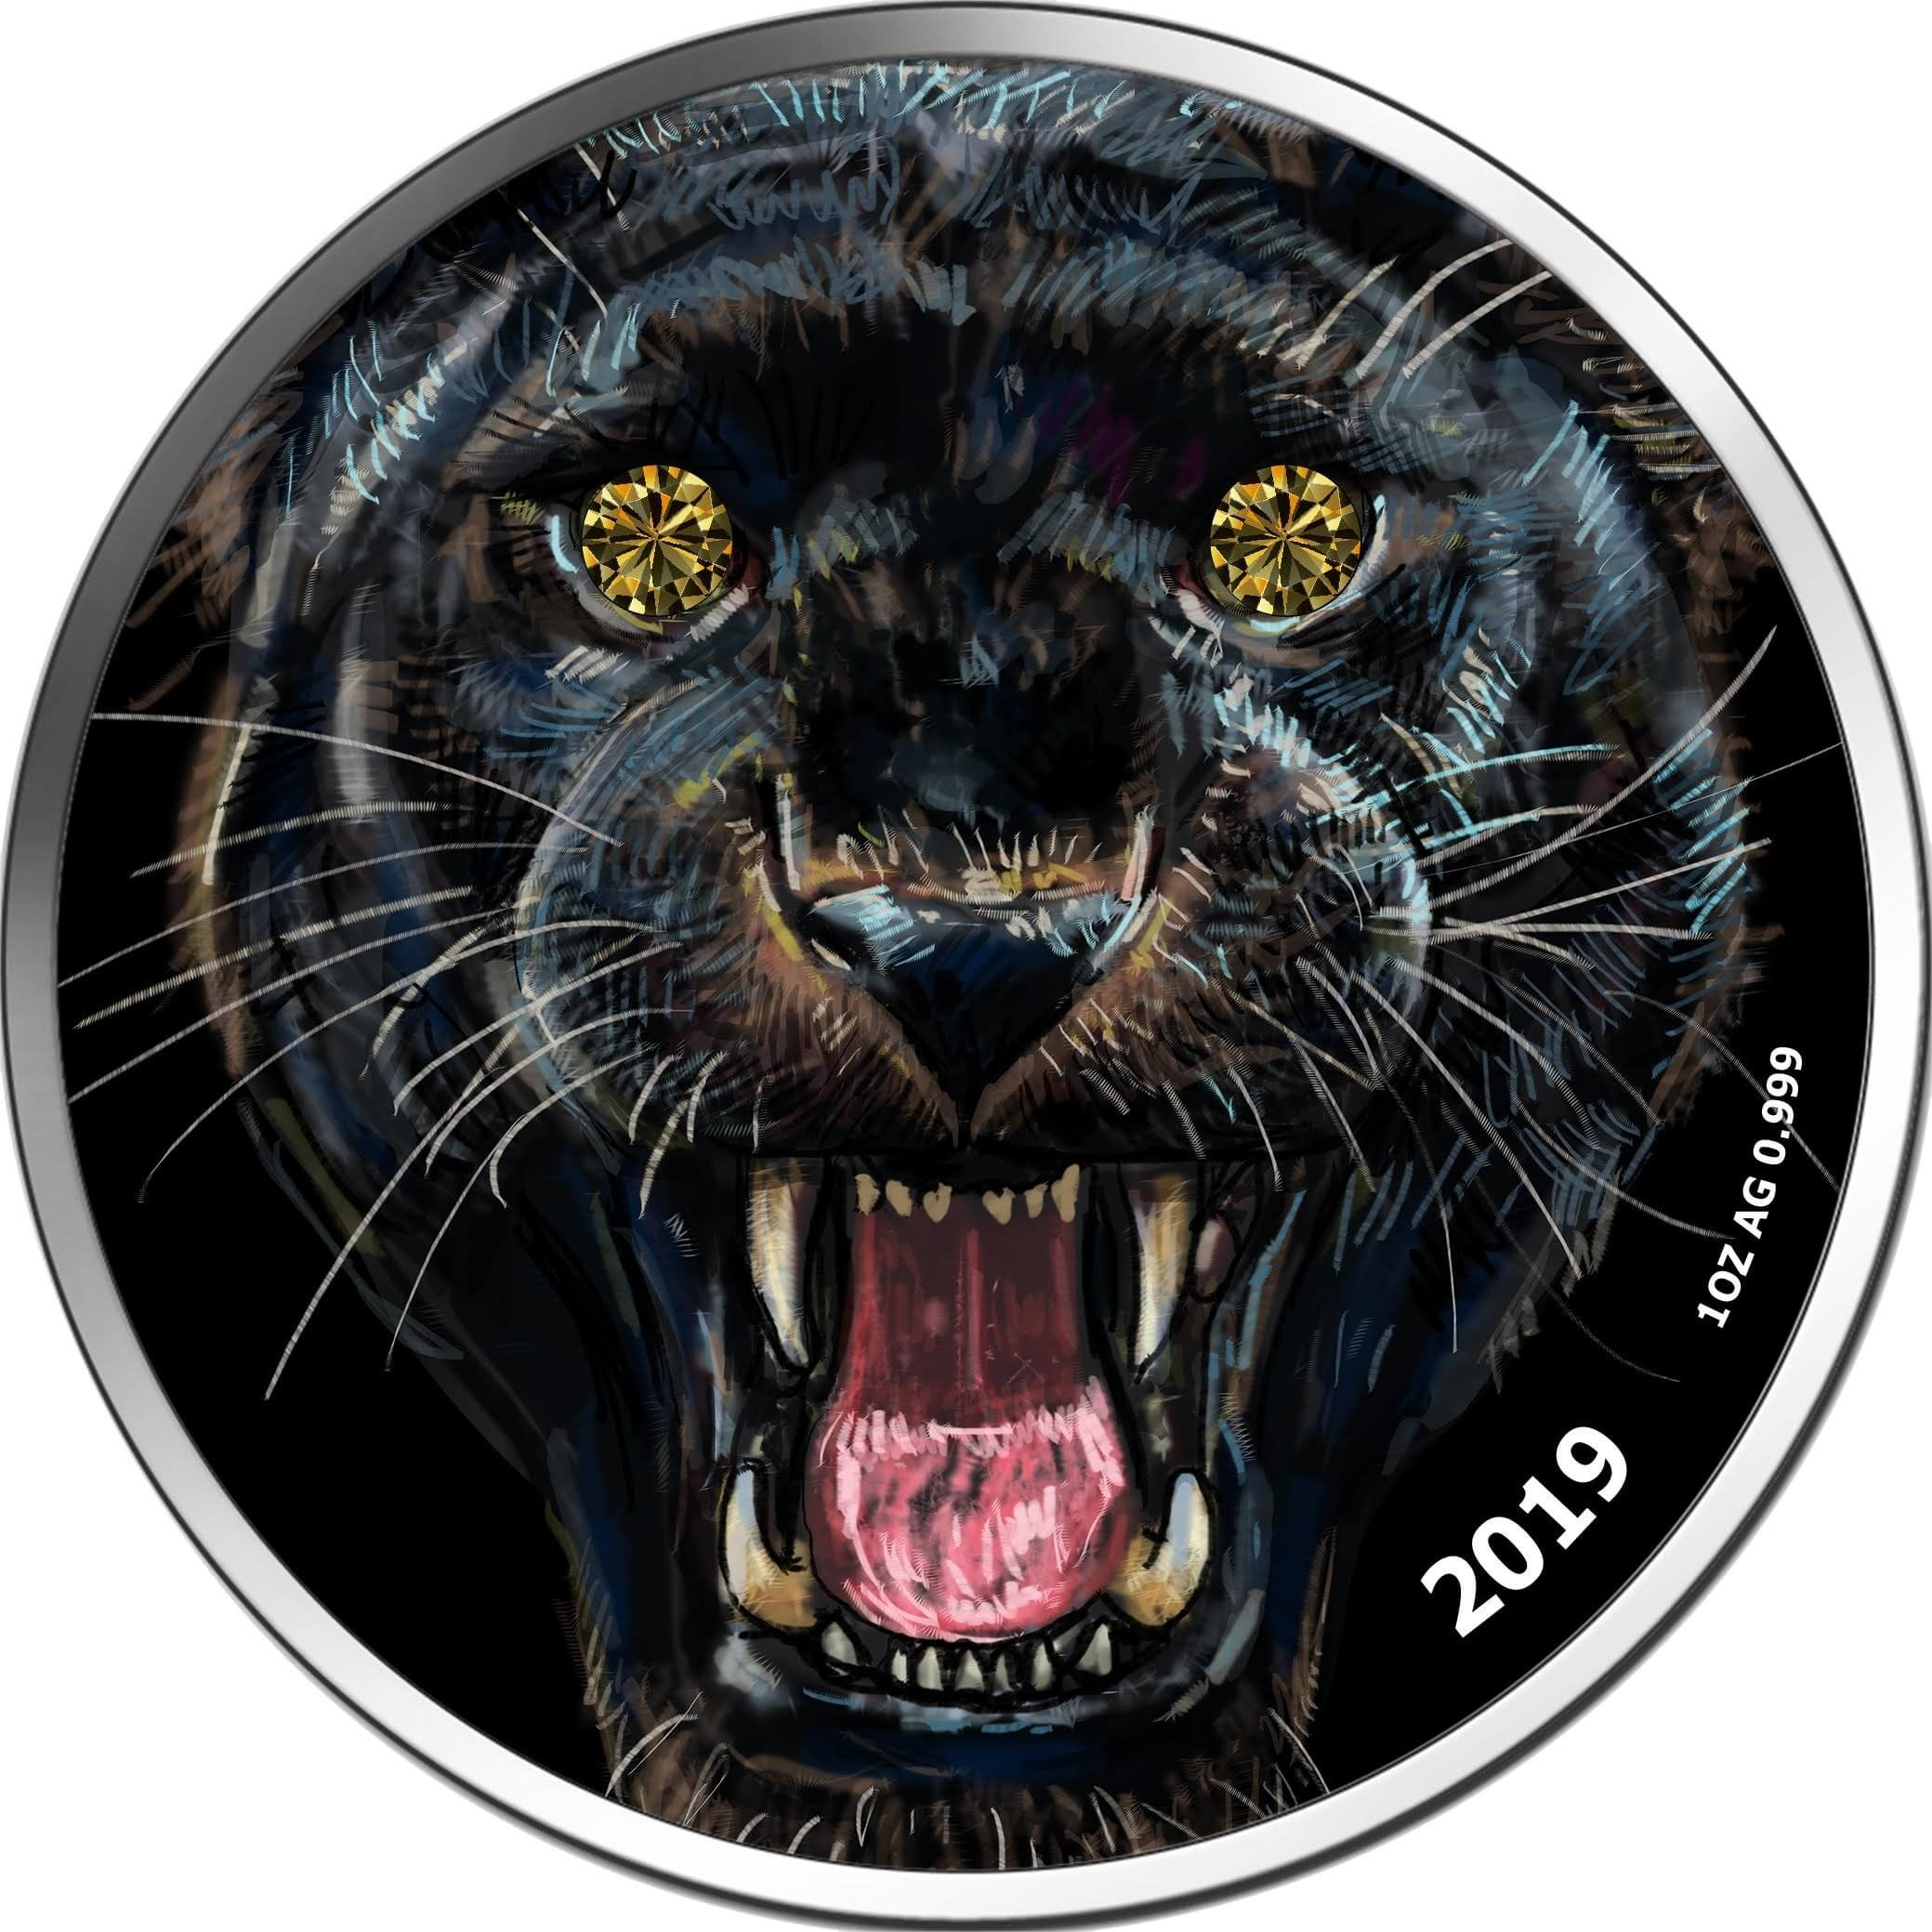 Diamond Black Panther 1 oz BU Silver Coin 1000 Francs CFA Cameroon 2019